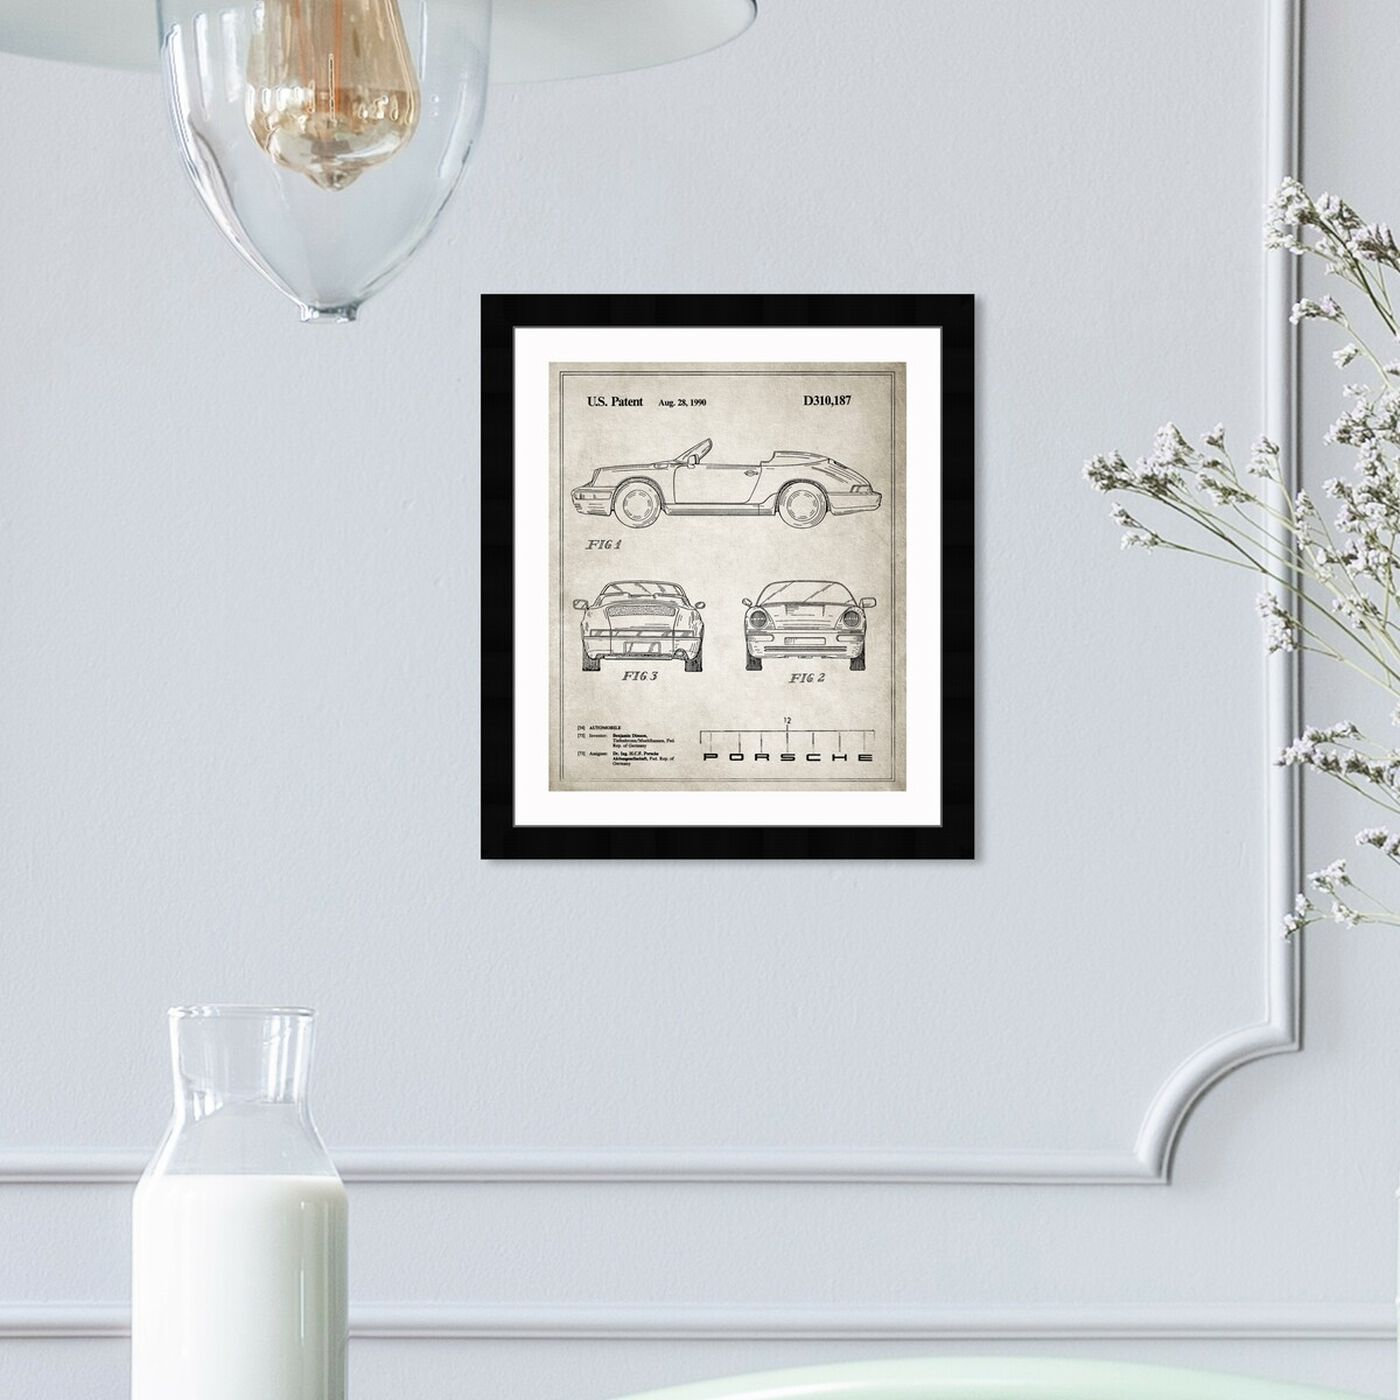 Hanging view of Porsche 911, 1990 - Gray featuring transportation and automobiles art.